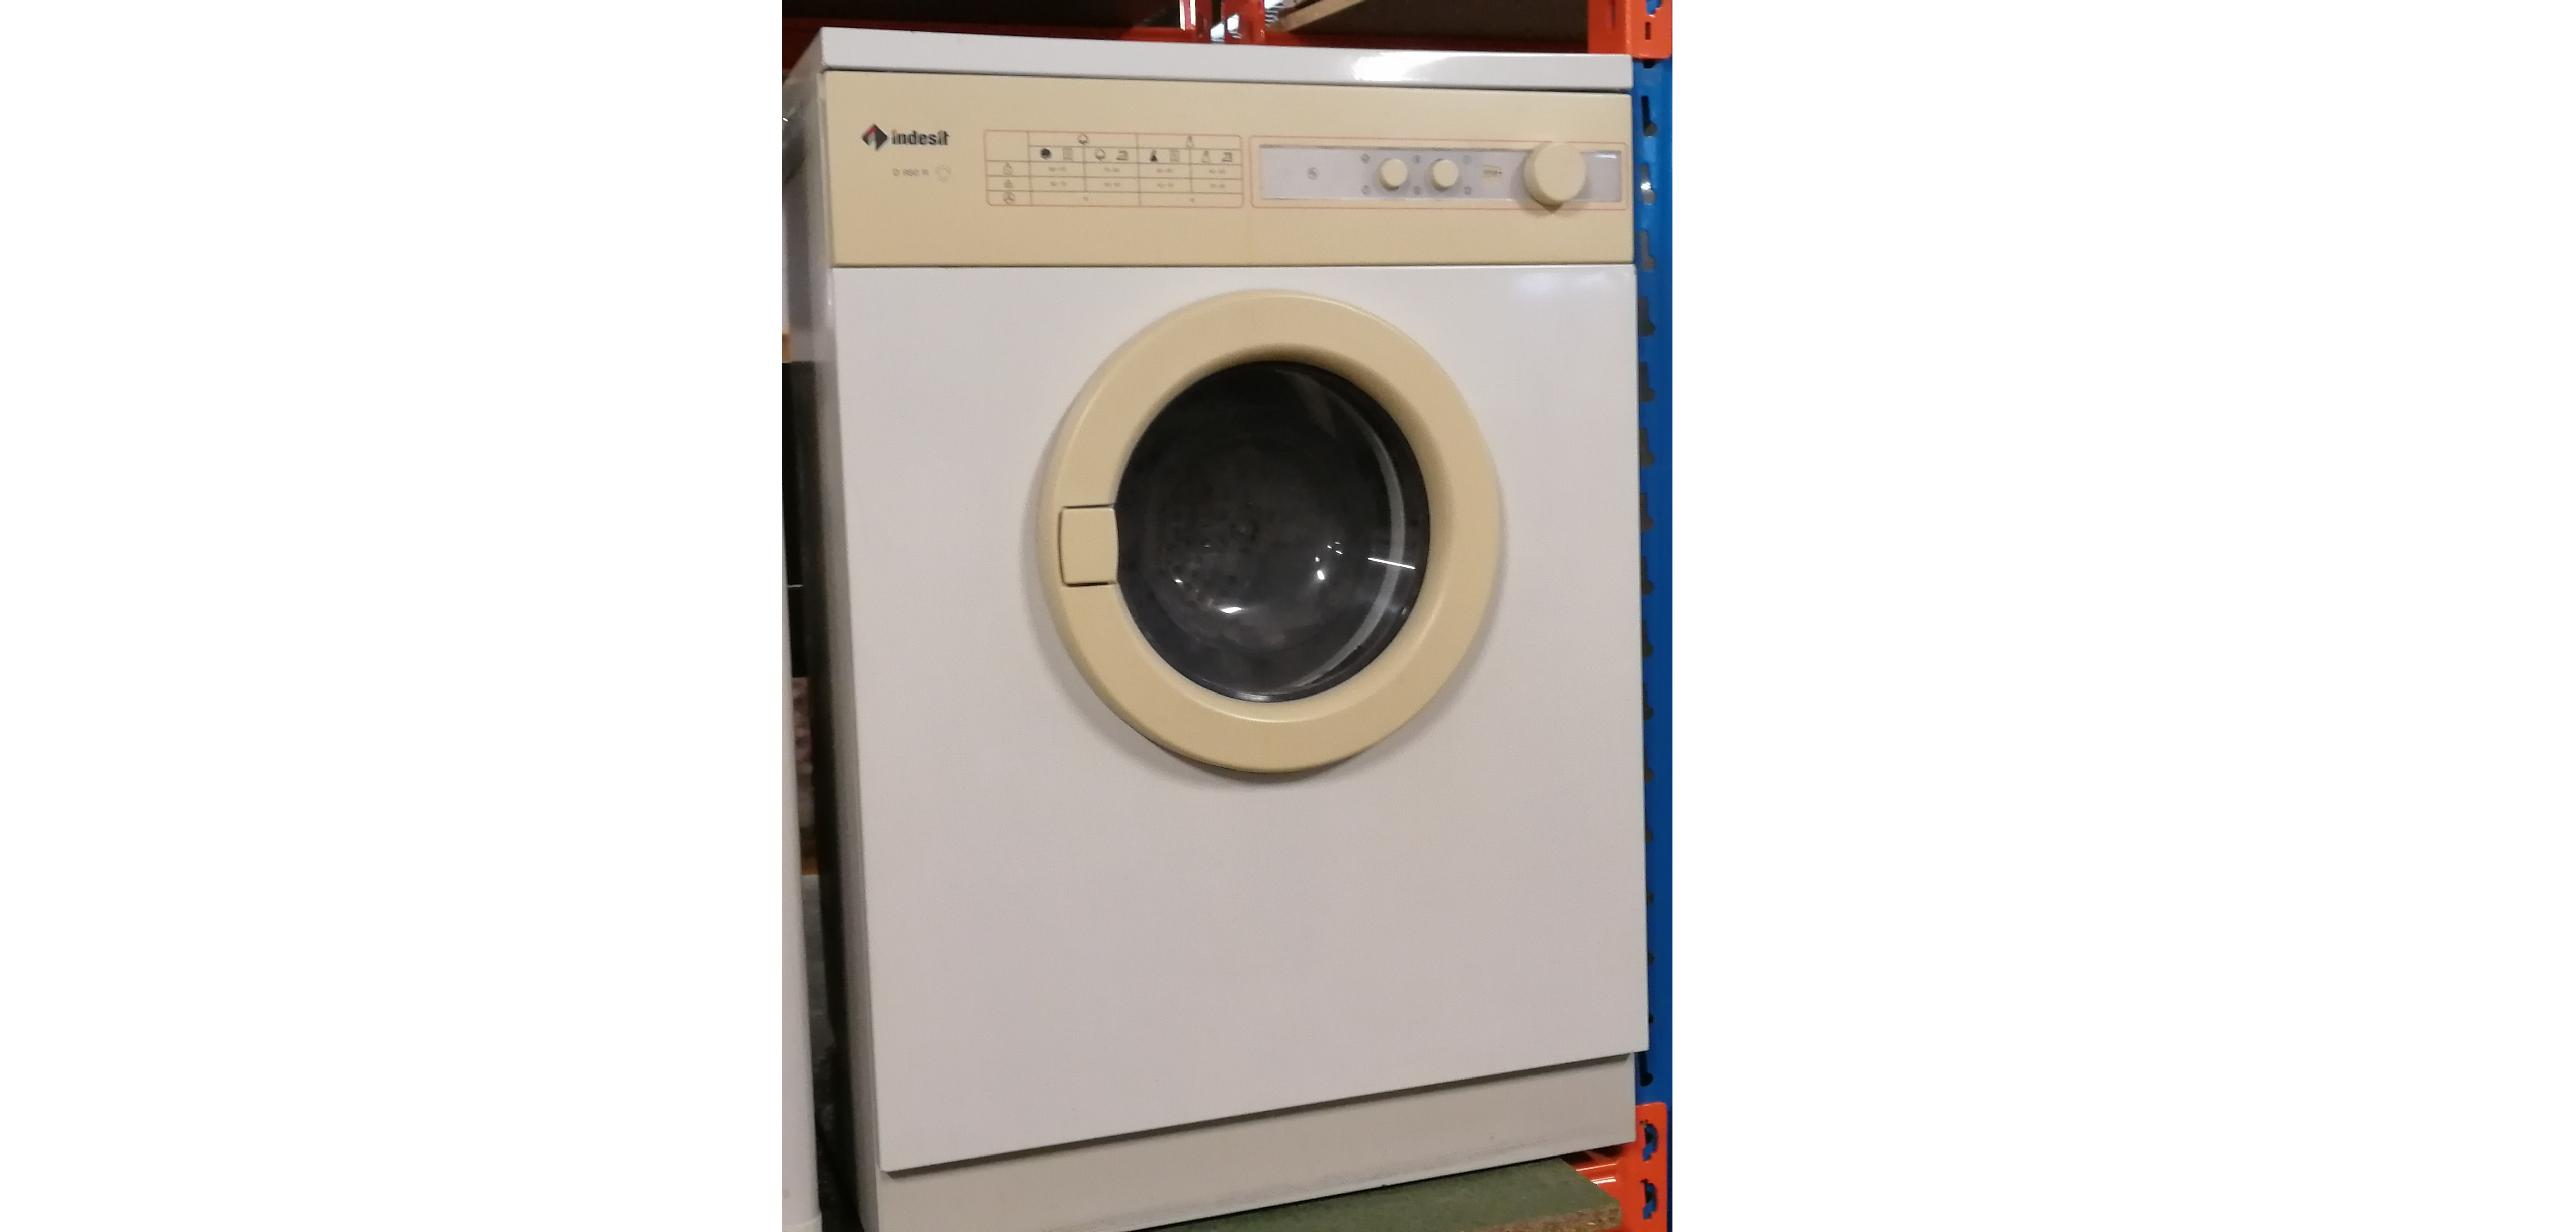 (4456) Indesit wasmachine met type nummer: D 950 R